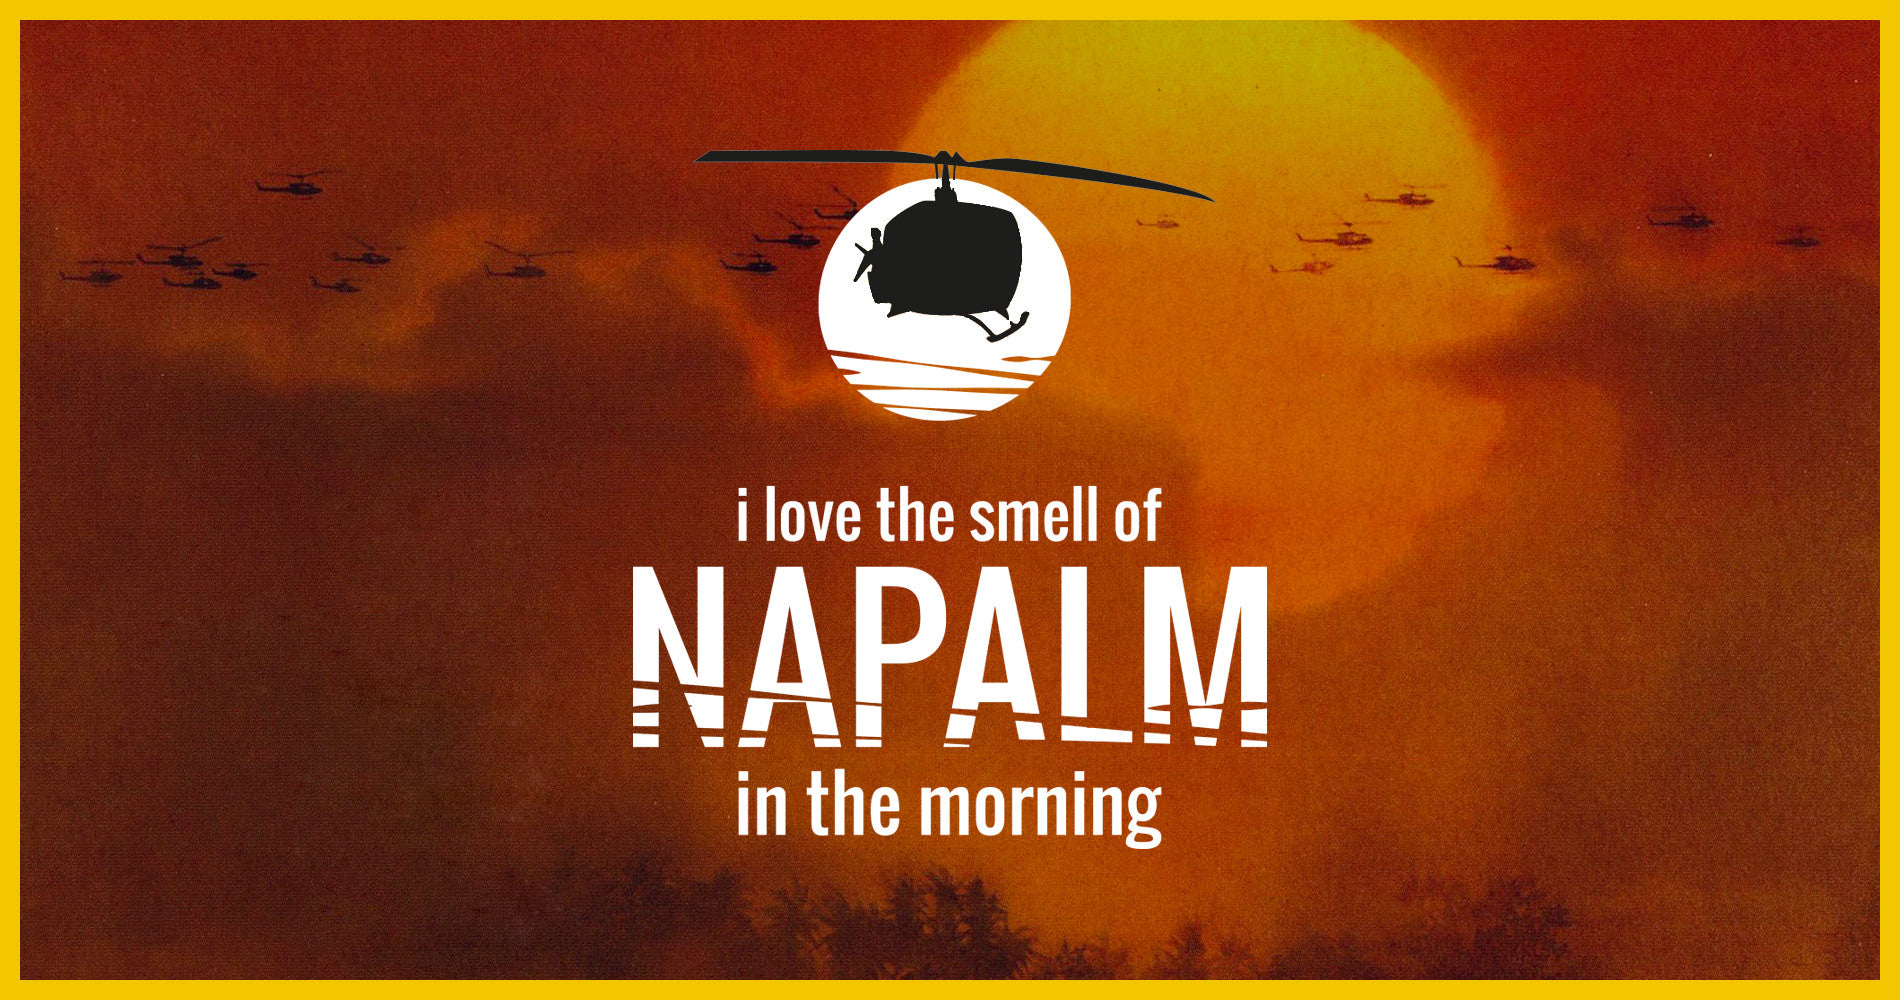 11 memorable quotes from Apocalypse Now